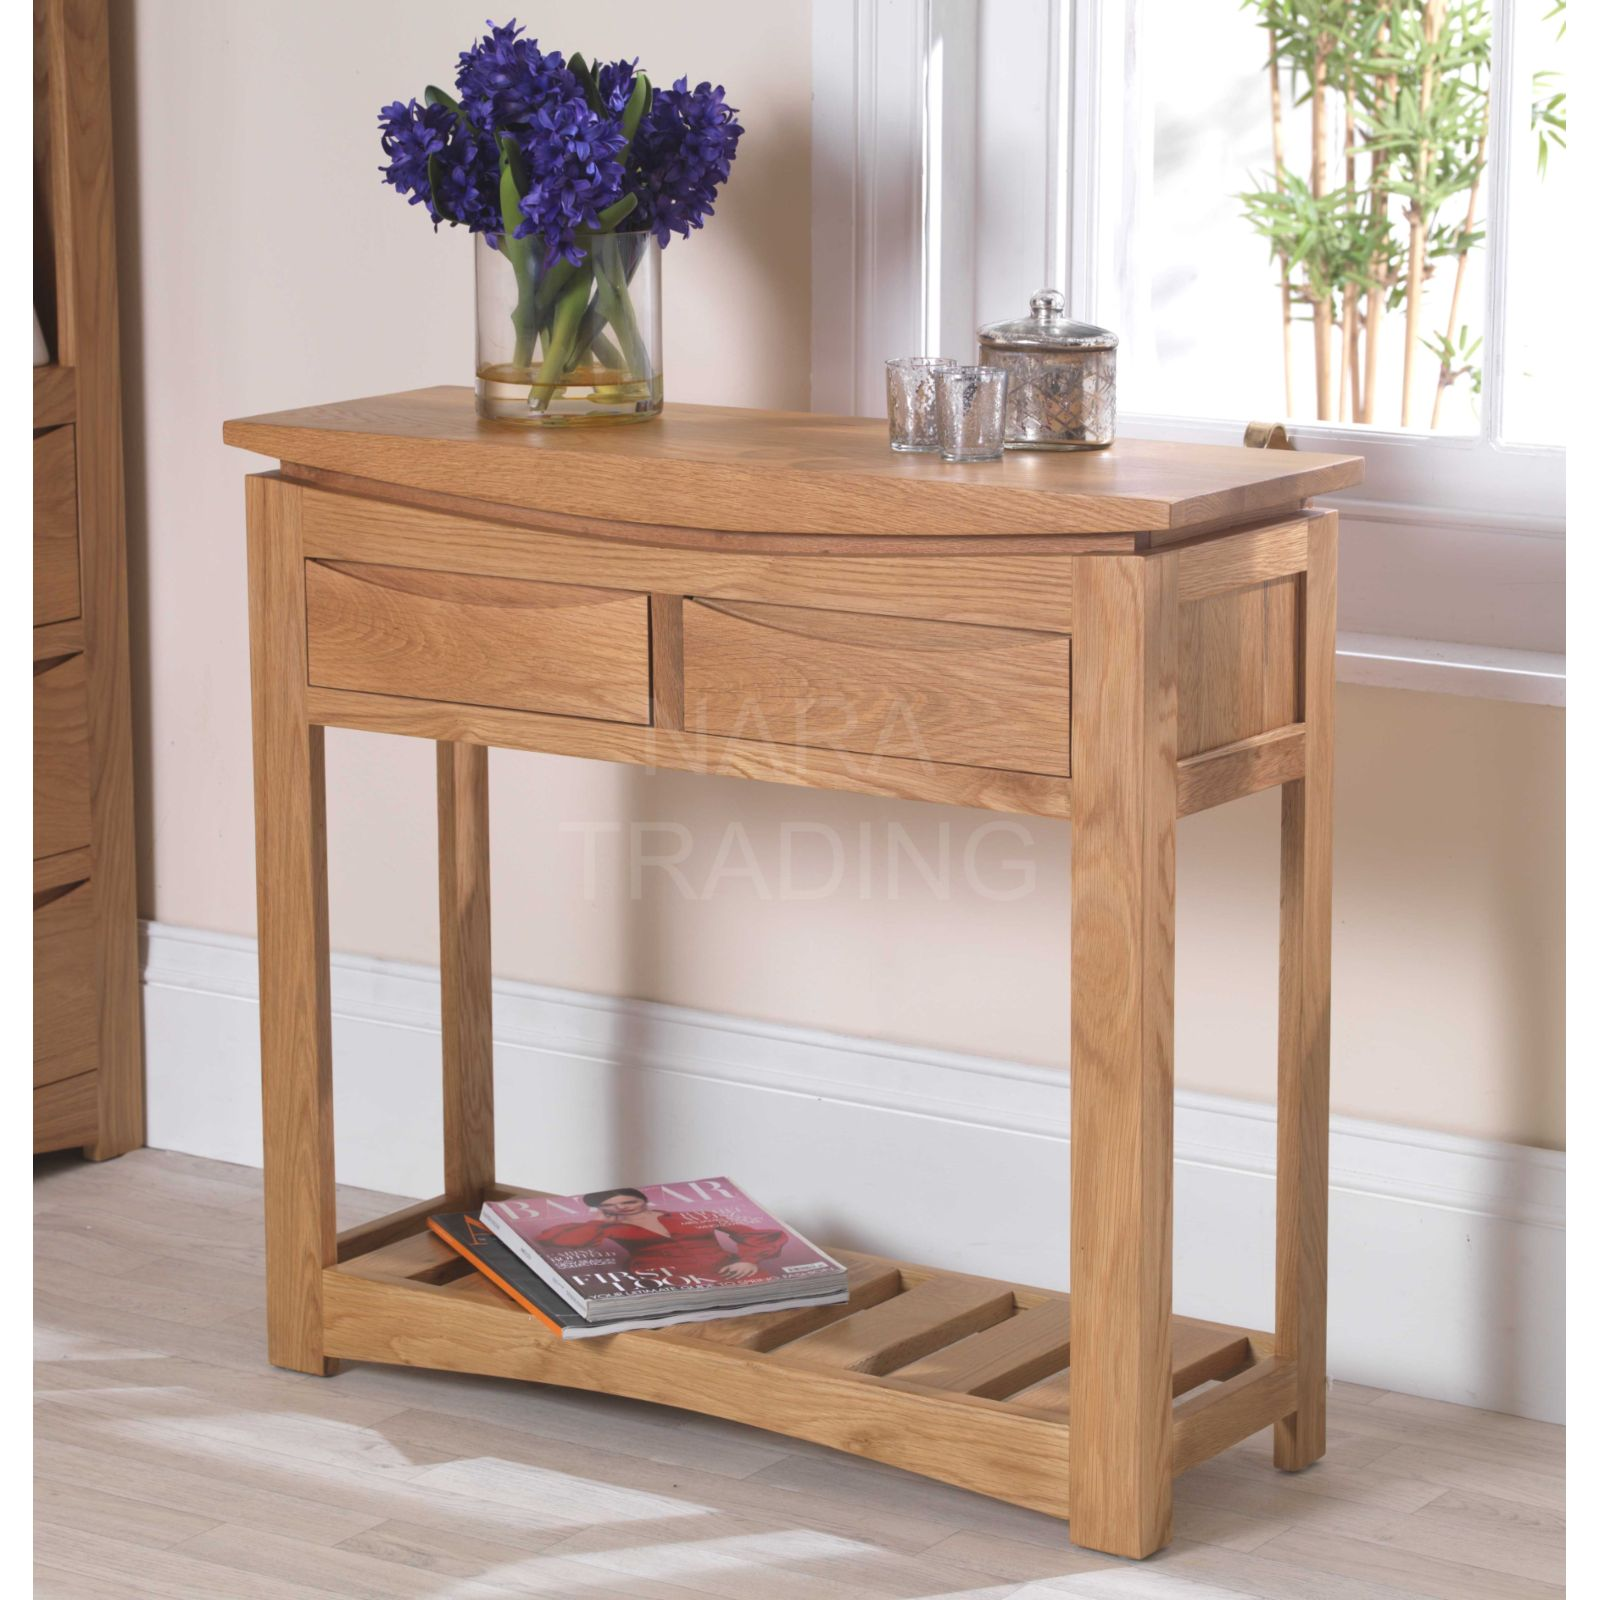 Foyer Table Uk : Crescent solid oak hallway furniture console hall table